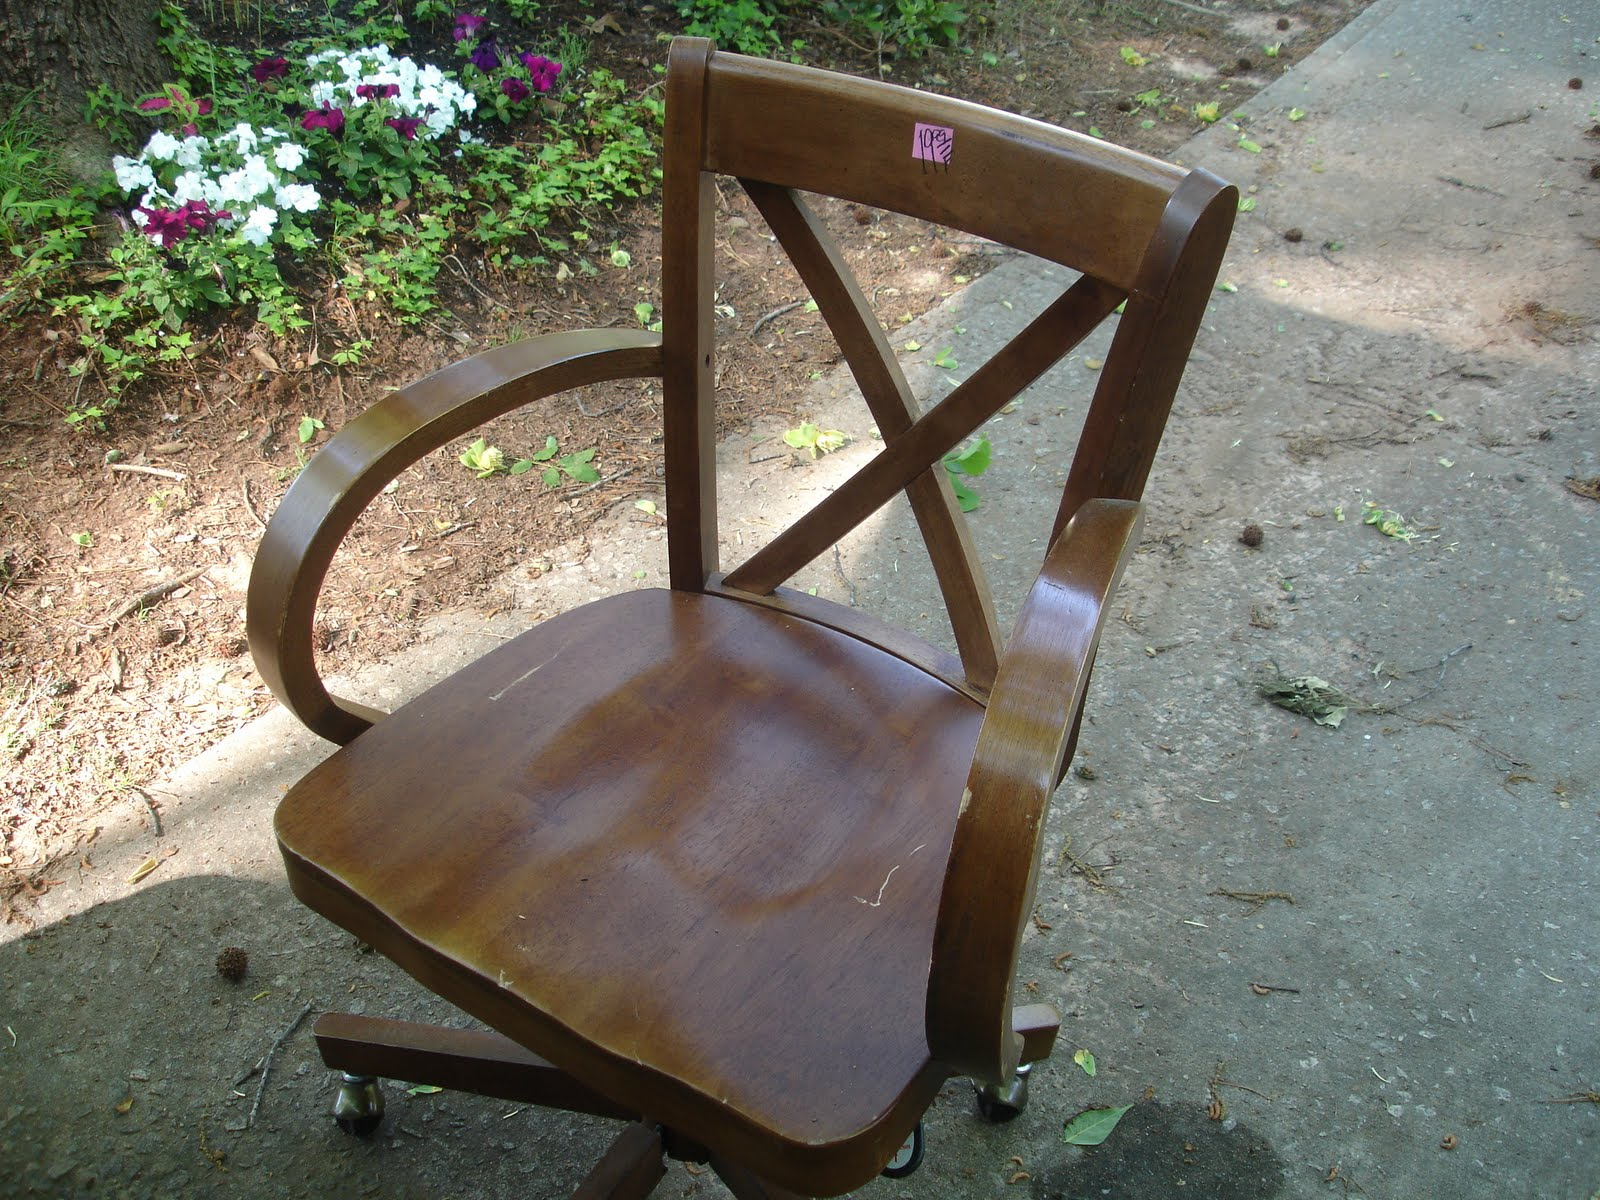 Wood Bankers Chair Don 39t Disturb This Groove Wood Banker 39s Chair